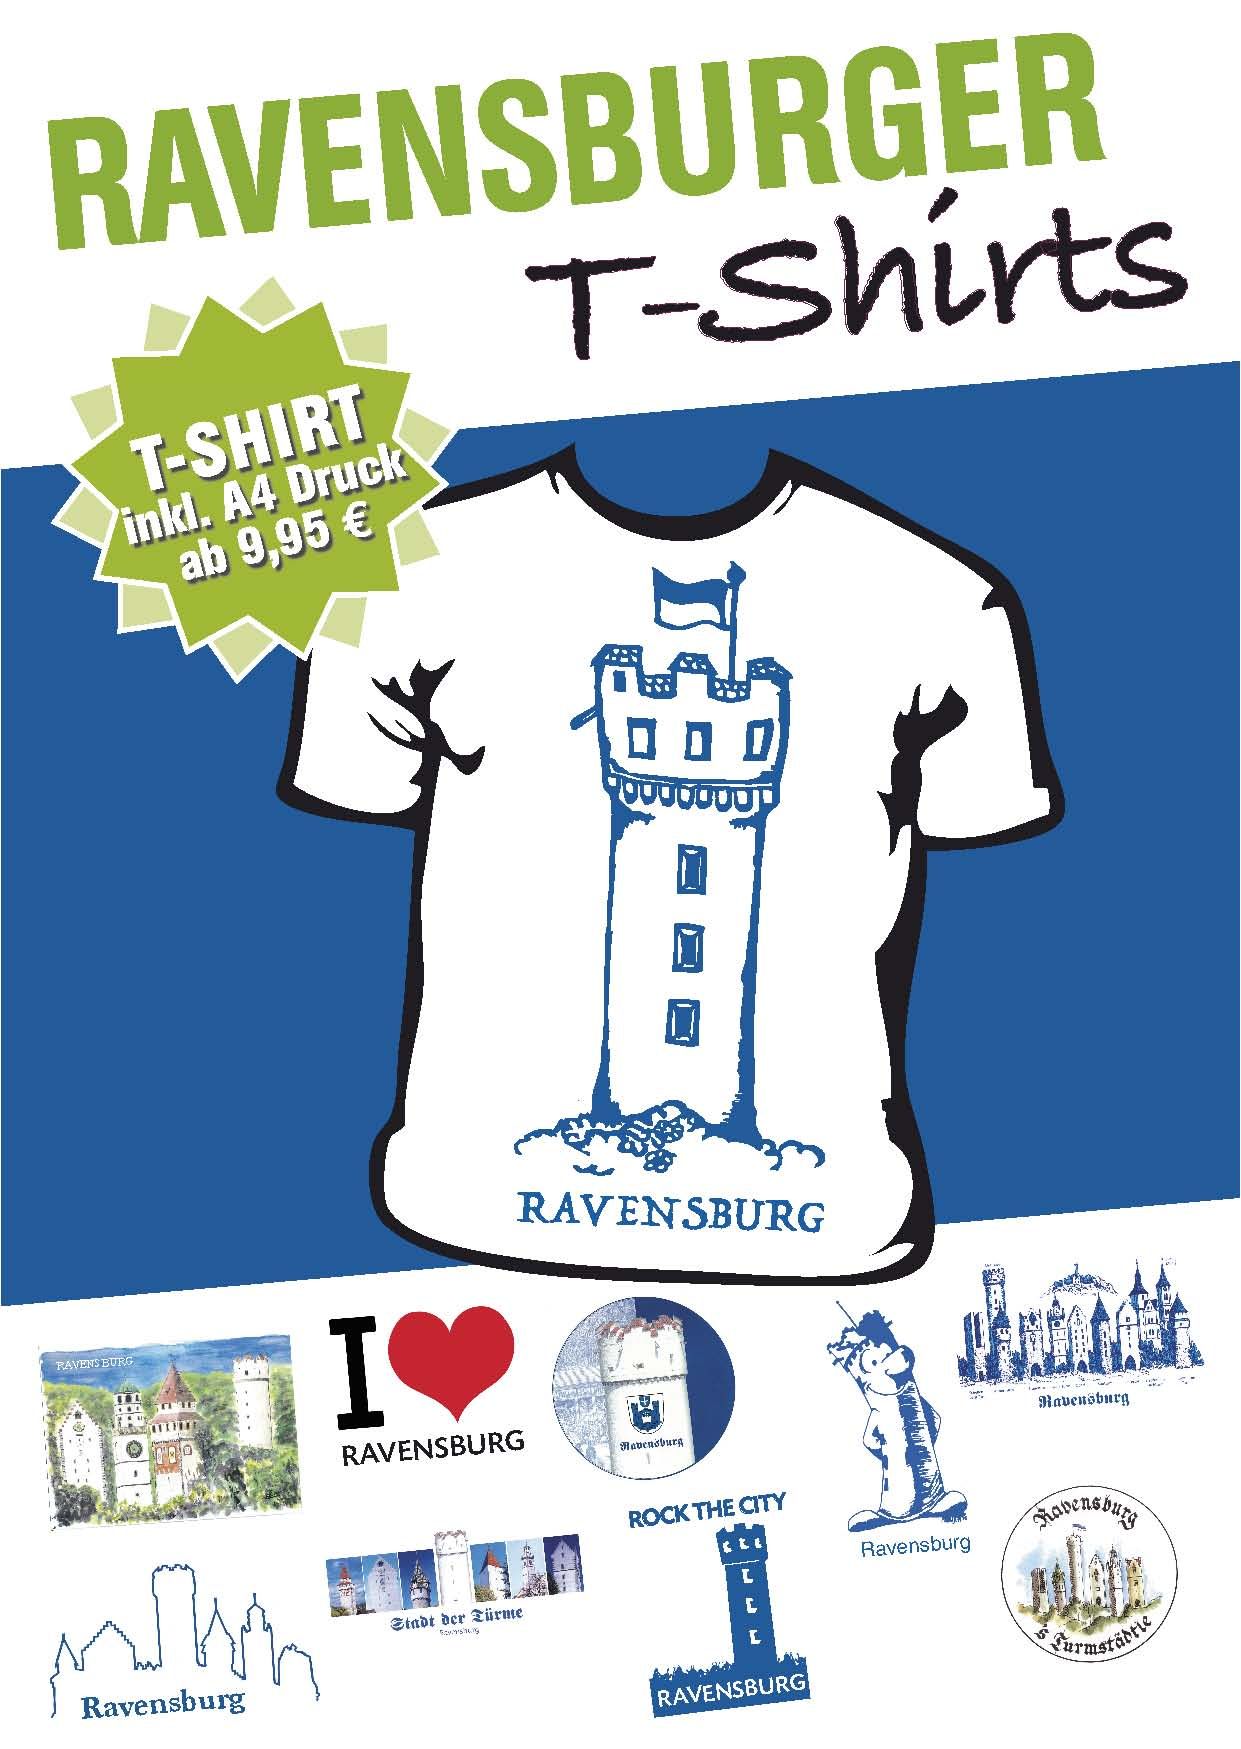 Ravensburger T-Shirt